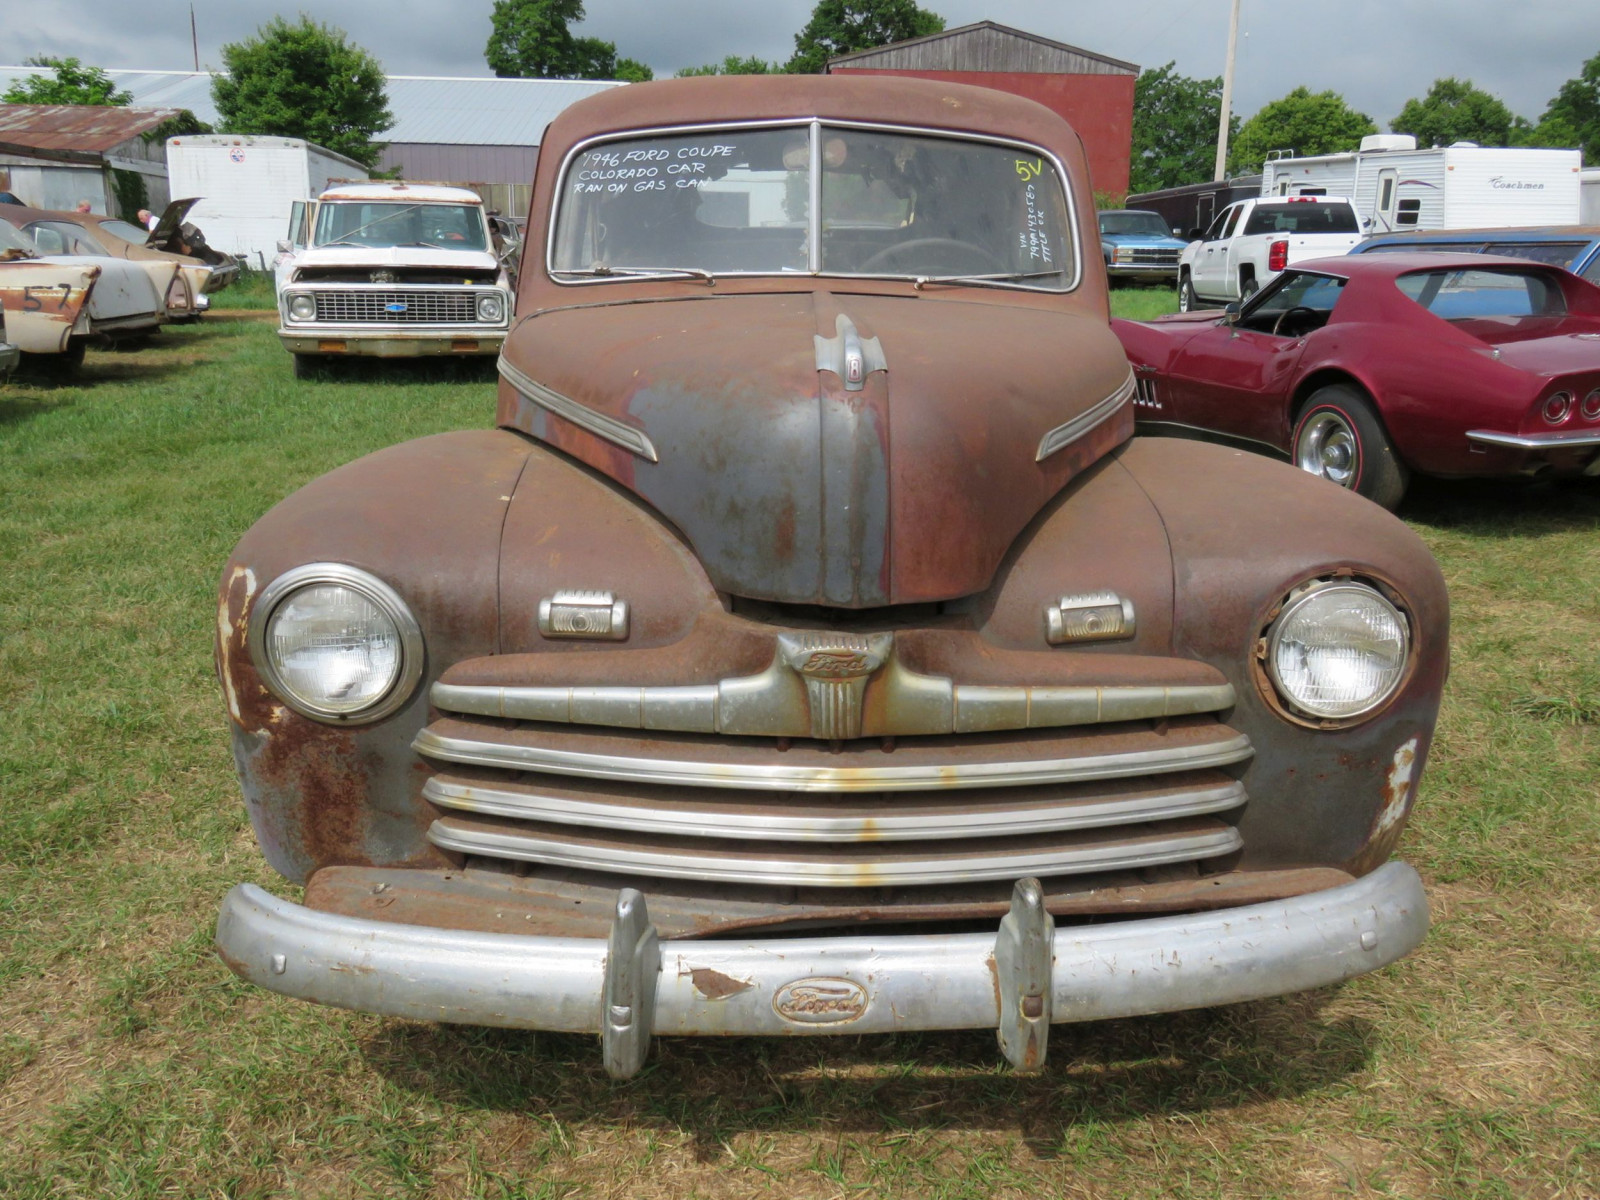 1946 Ford Super Deluxe Coupe Ford for Rod or Restore - Image 2